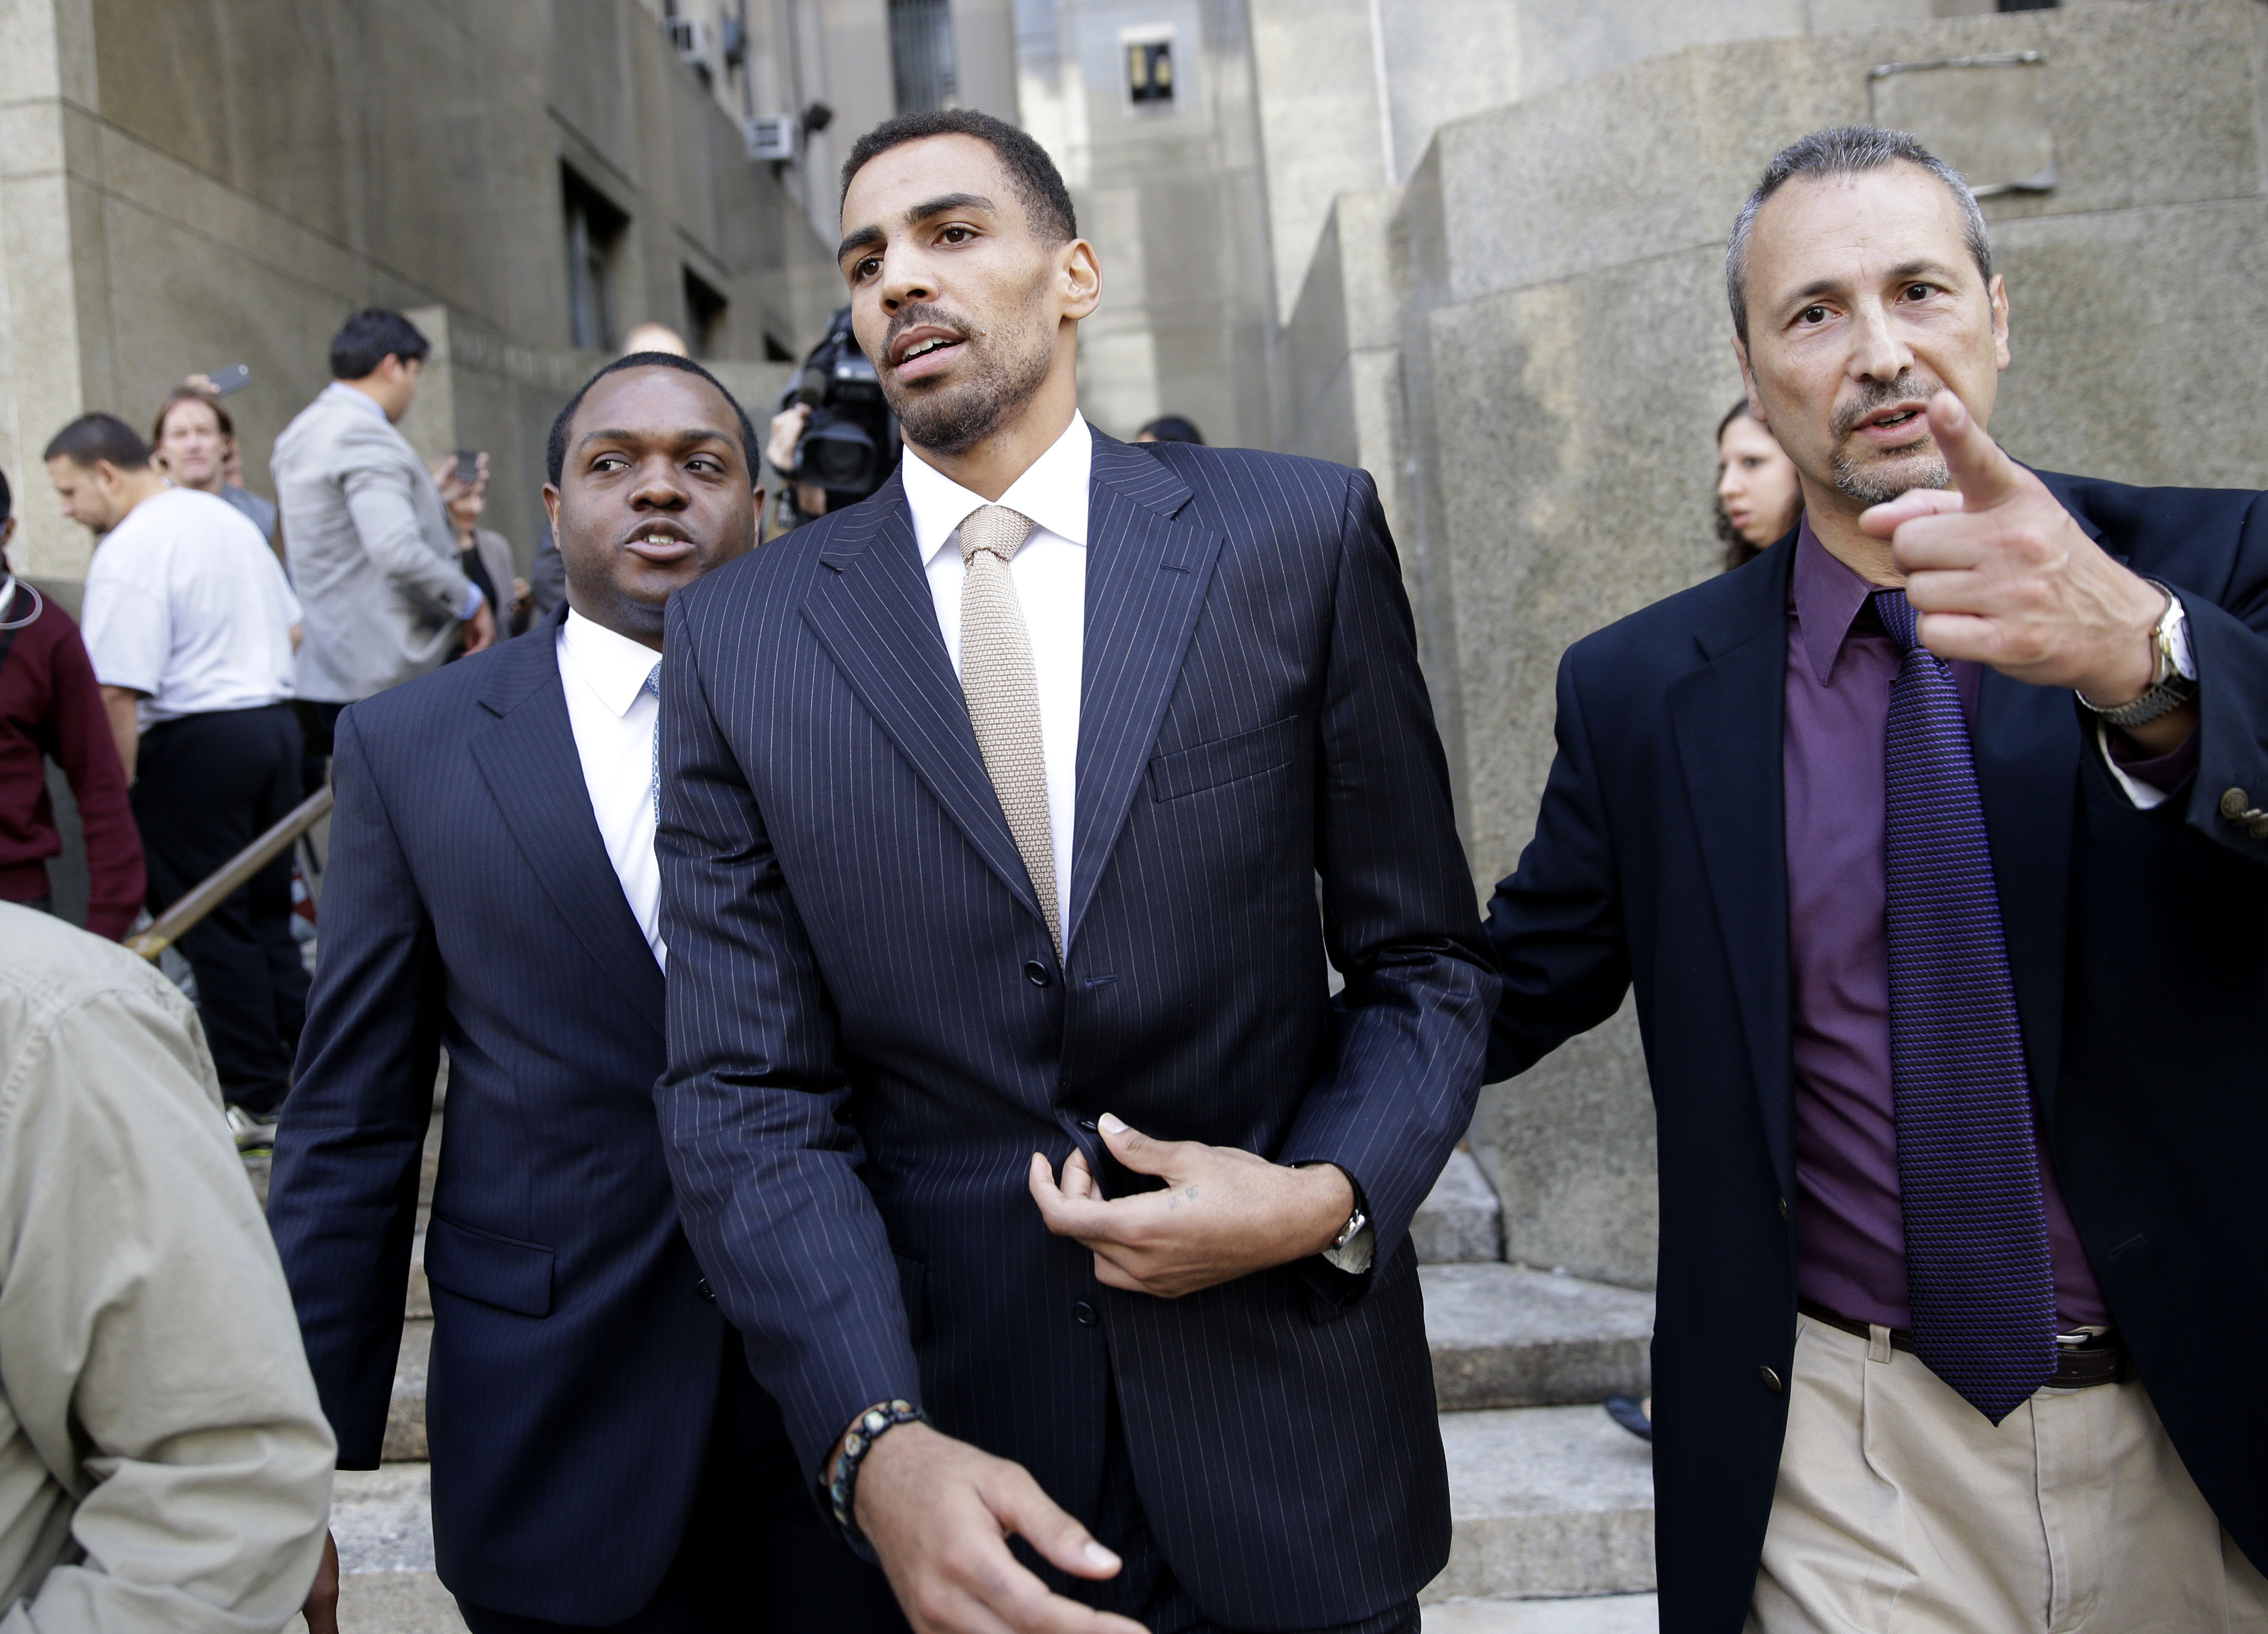 Thabo Sefolosha, center, leaves criminal court in New York, Friday, Oct. 9, 2015. The Atlanta Hawks' player was acquitted Friday in a case stemming from a police fracas outside a trendy New York City nightclub.